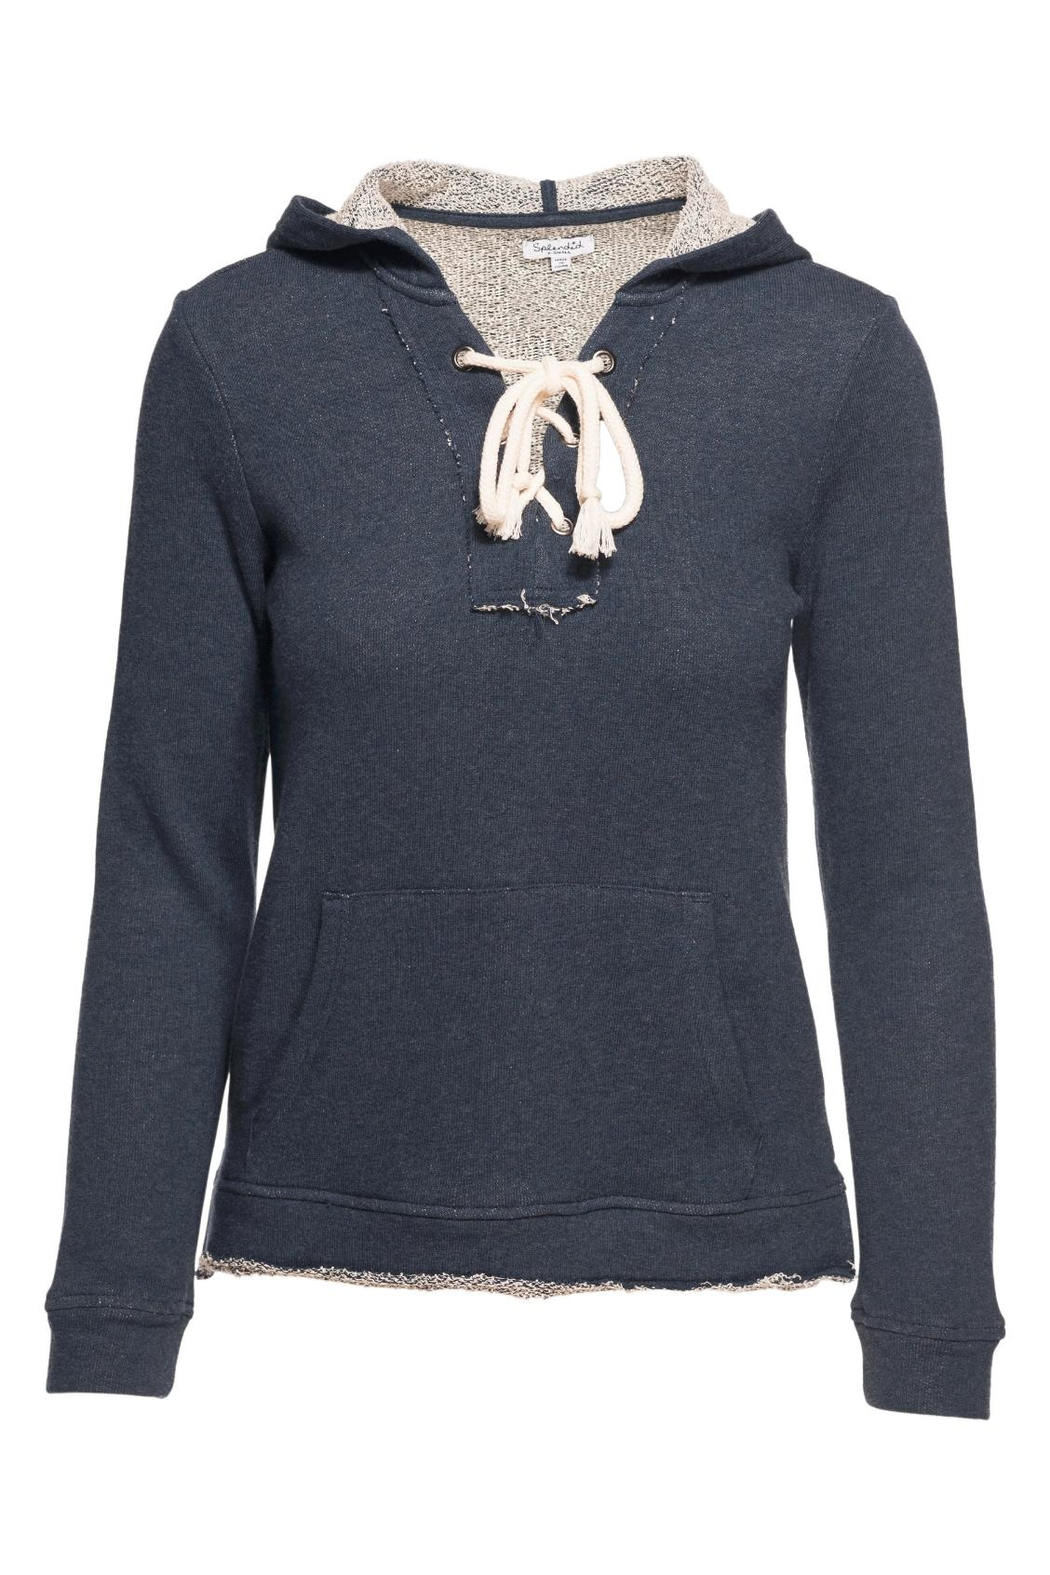 Splendid Lace Up Hoodie Sweater - Main Image